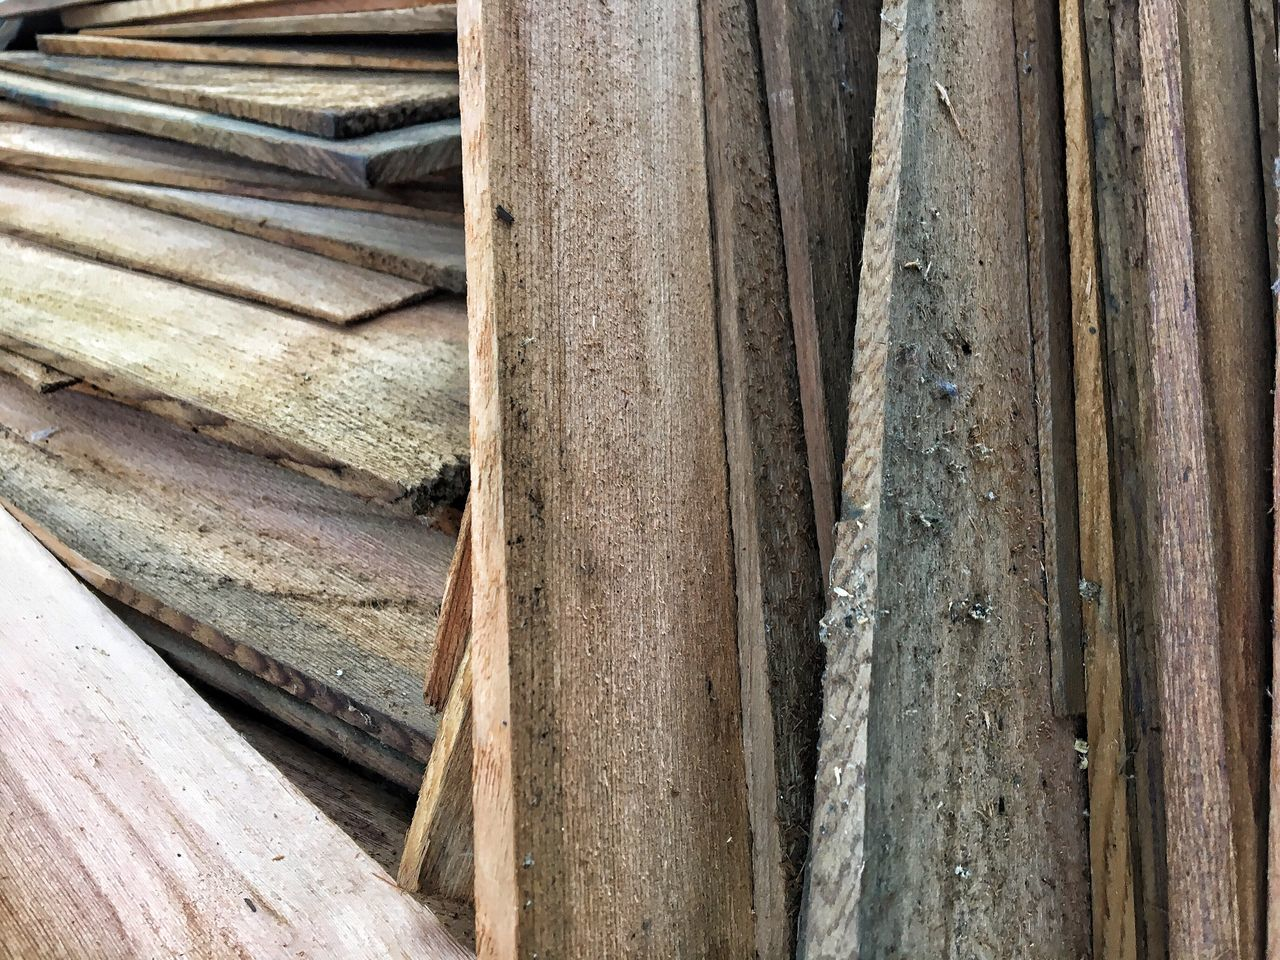 Outdoors Day Abstract Backgrounds Wood - Material Full Frame No People Textured  Pattern Close-up Used Shingles Weathered